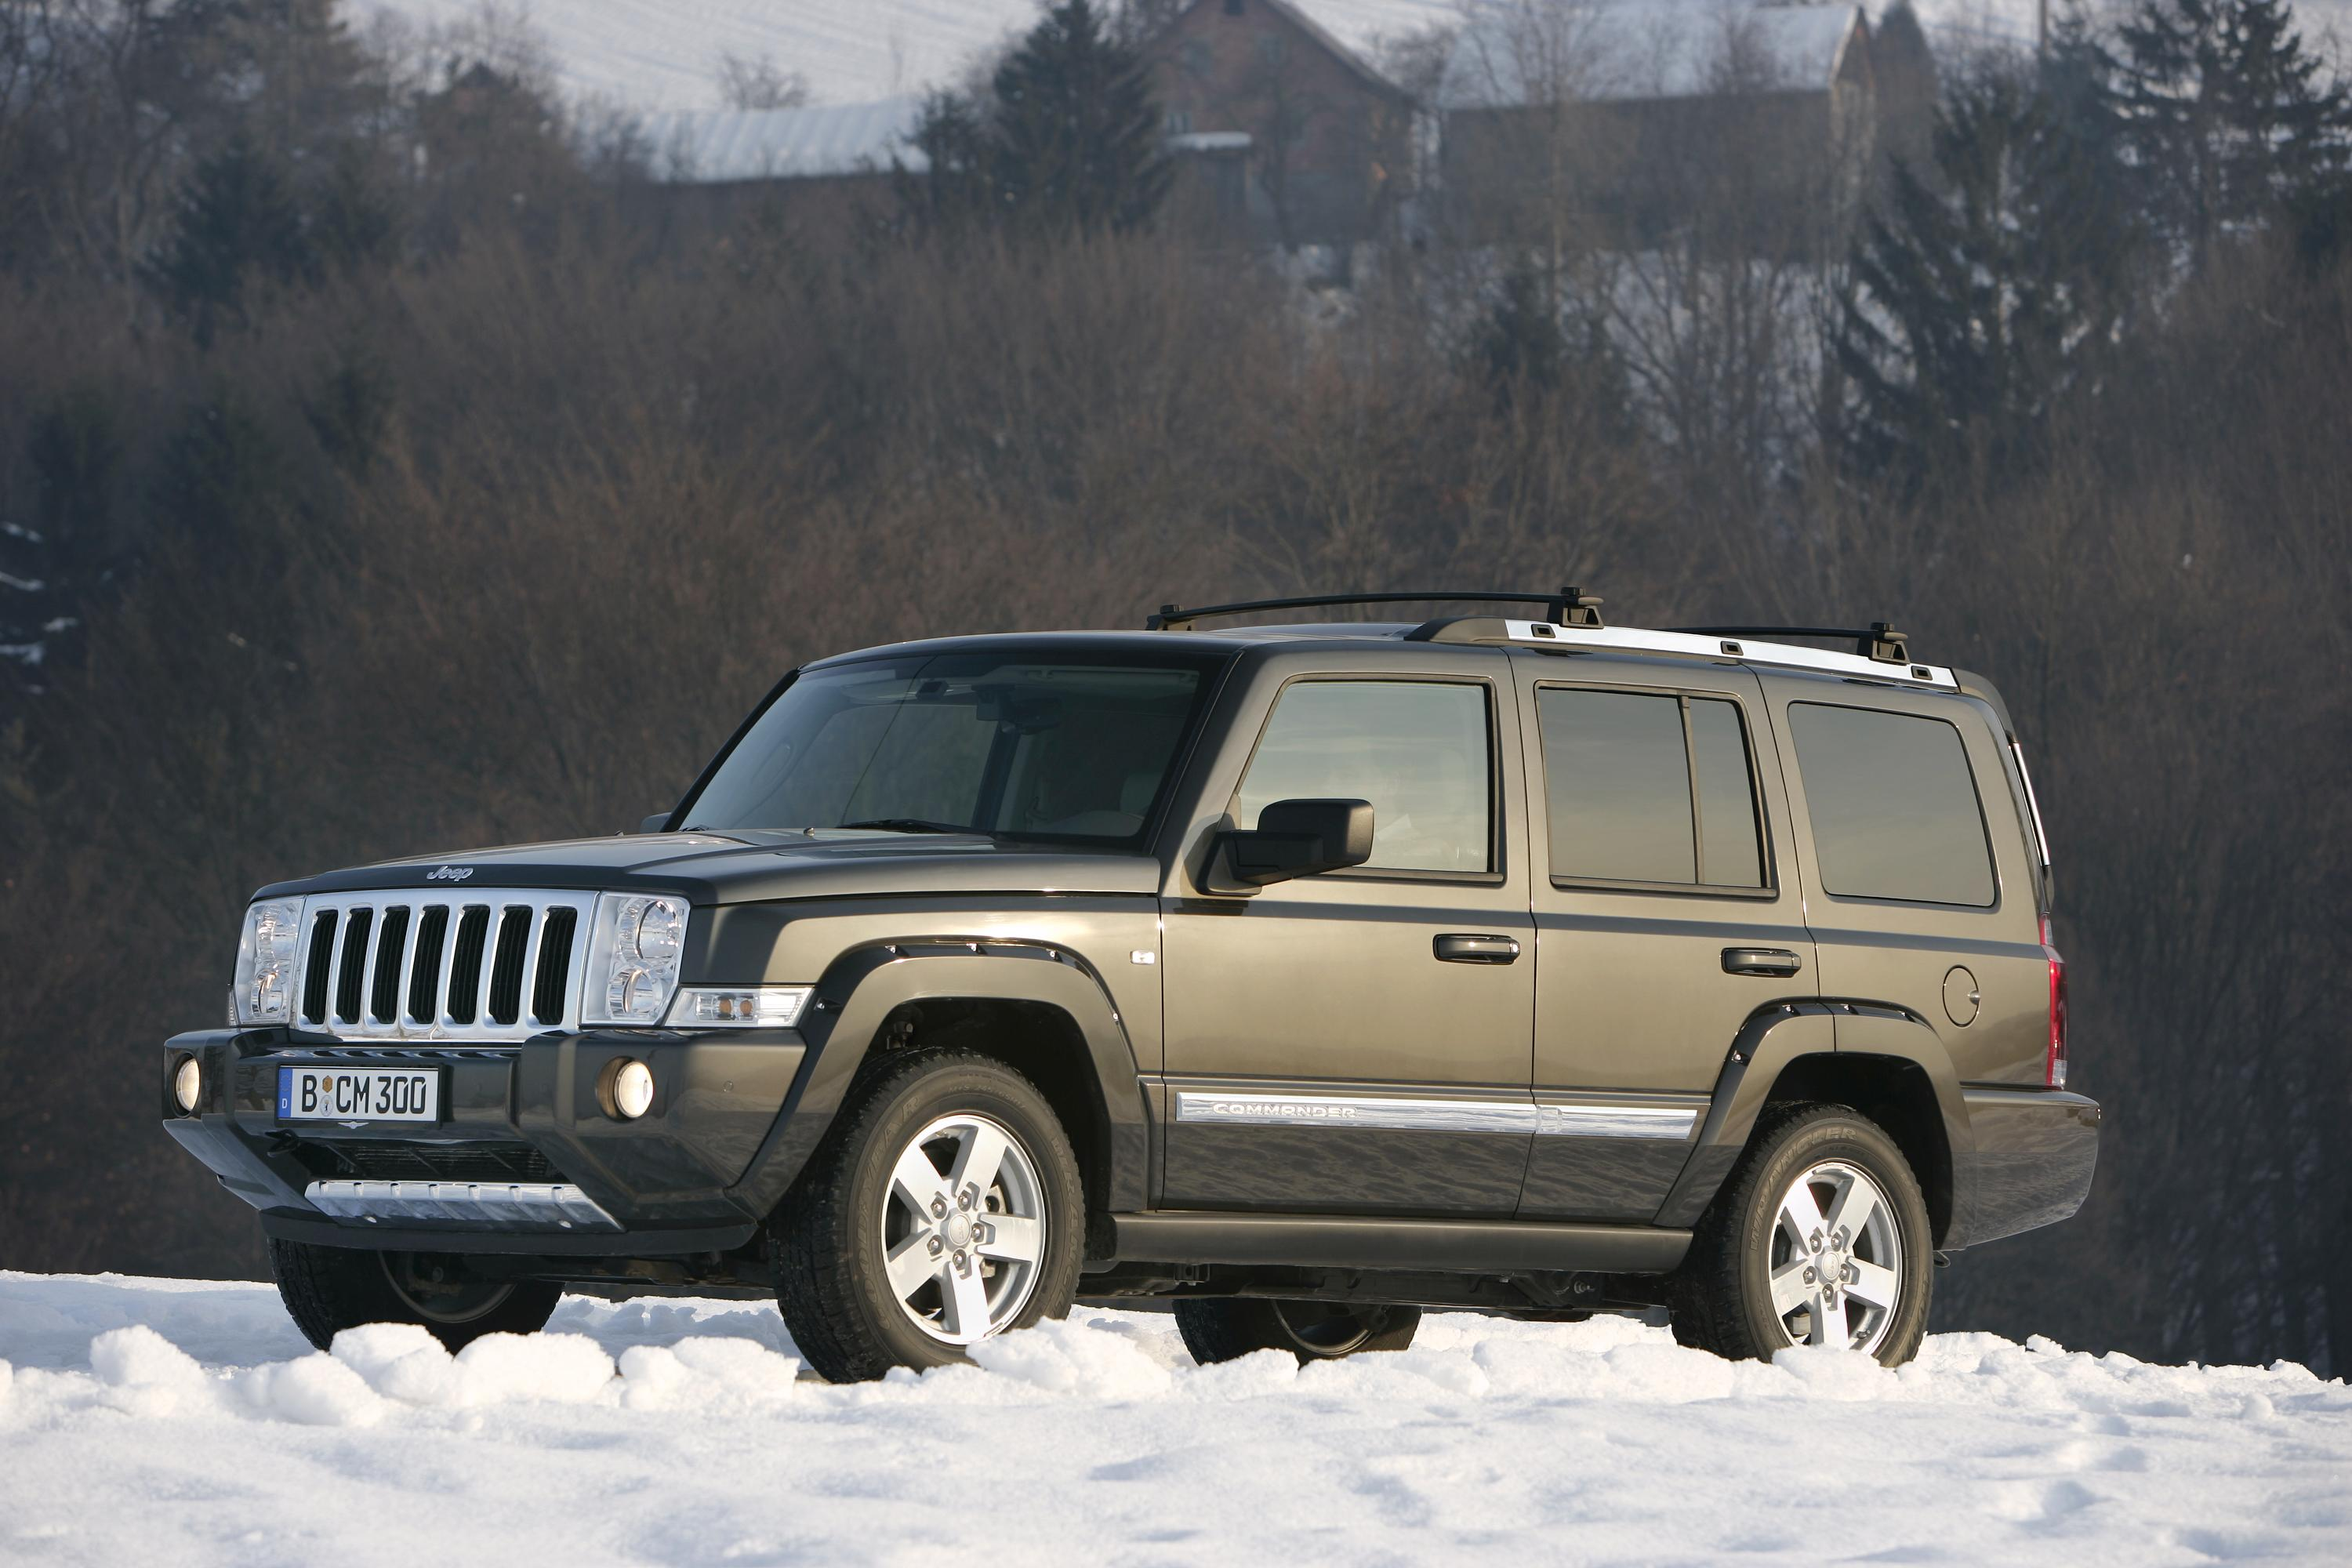 2007 jeep commander review - top speed